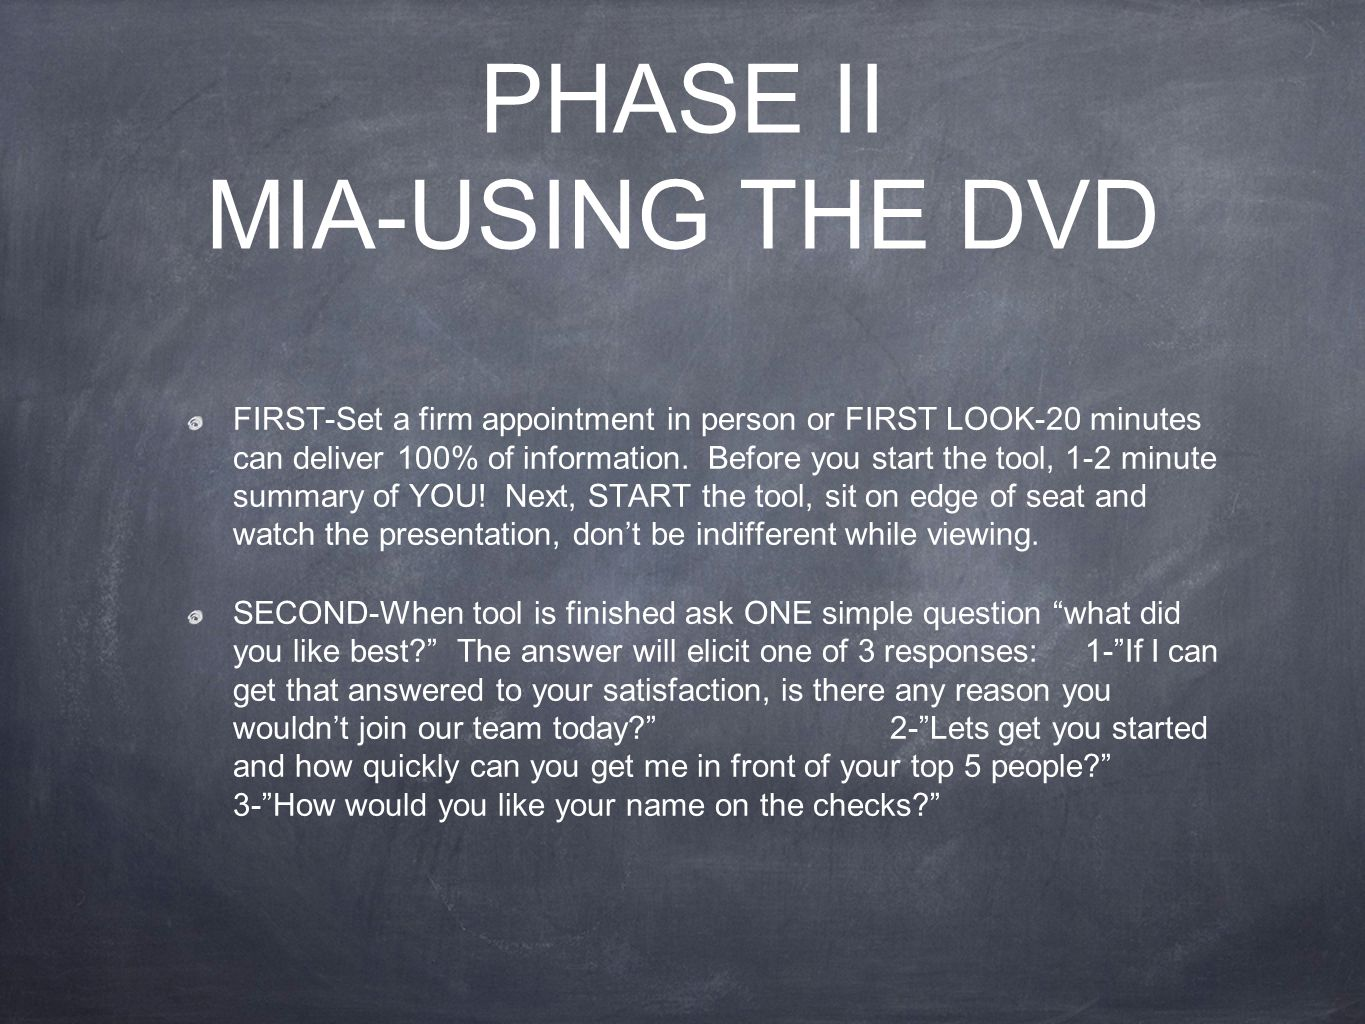 PHASE II MIA-USING THE DVD FIRST-Set a firm appointment in person or FIRST LOOK-20 minutes can deliver 100% of information. Before you start the tool,